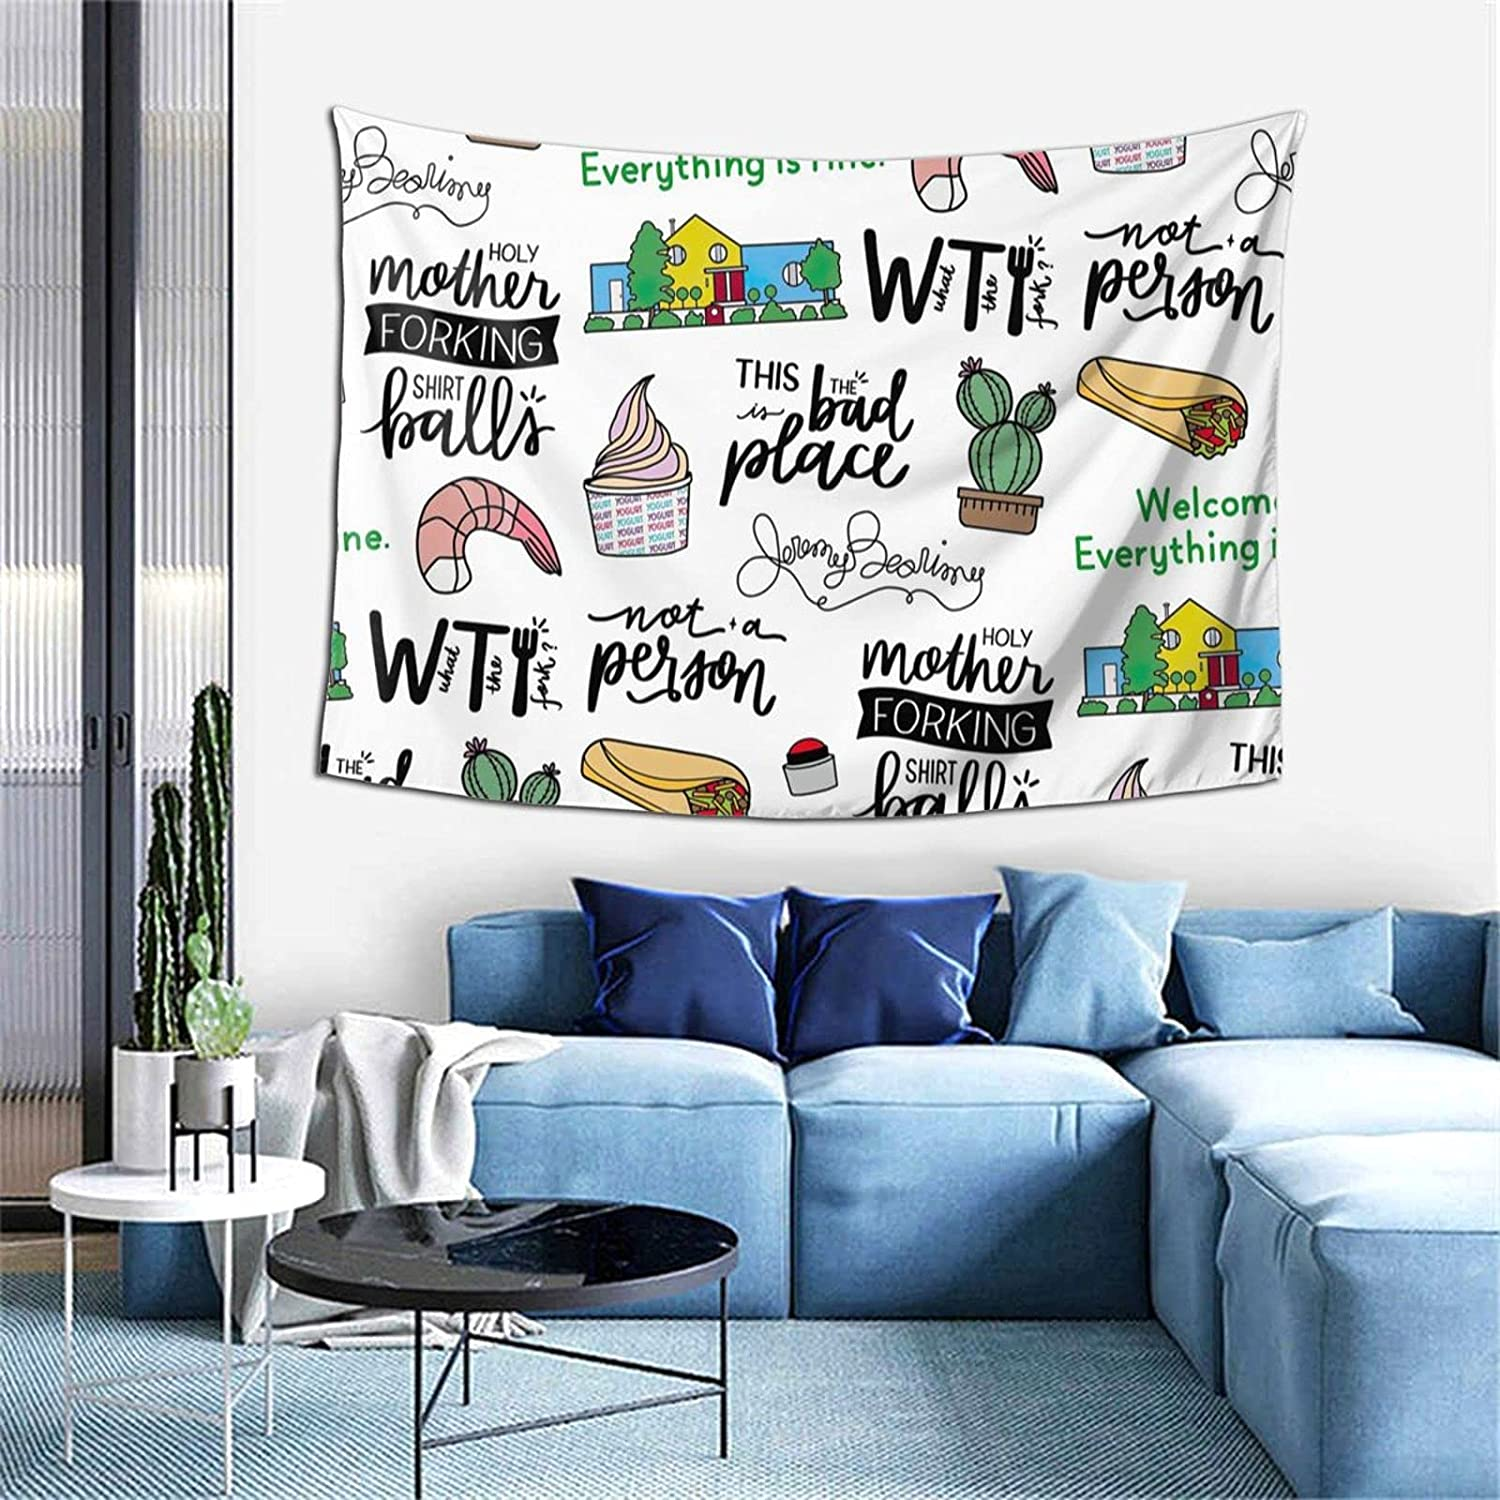 The Good Place Tv Show Art Tapestry Psychedelic Wall Hanging Tapestry For Room,Home Decor (60x40inch)